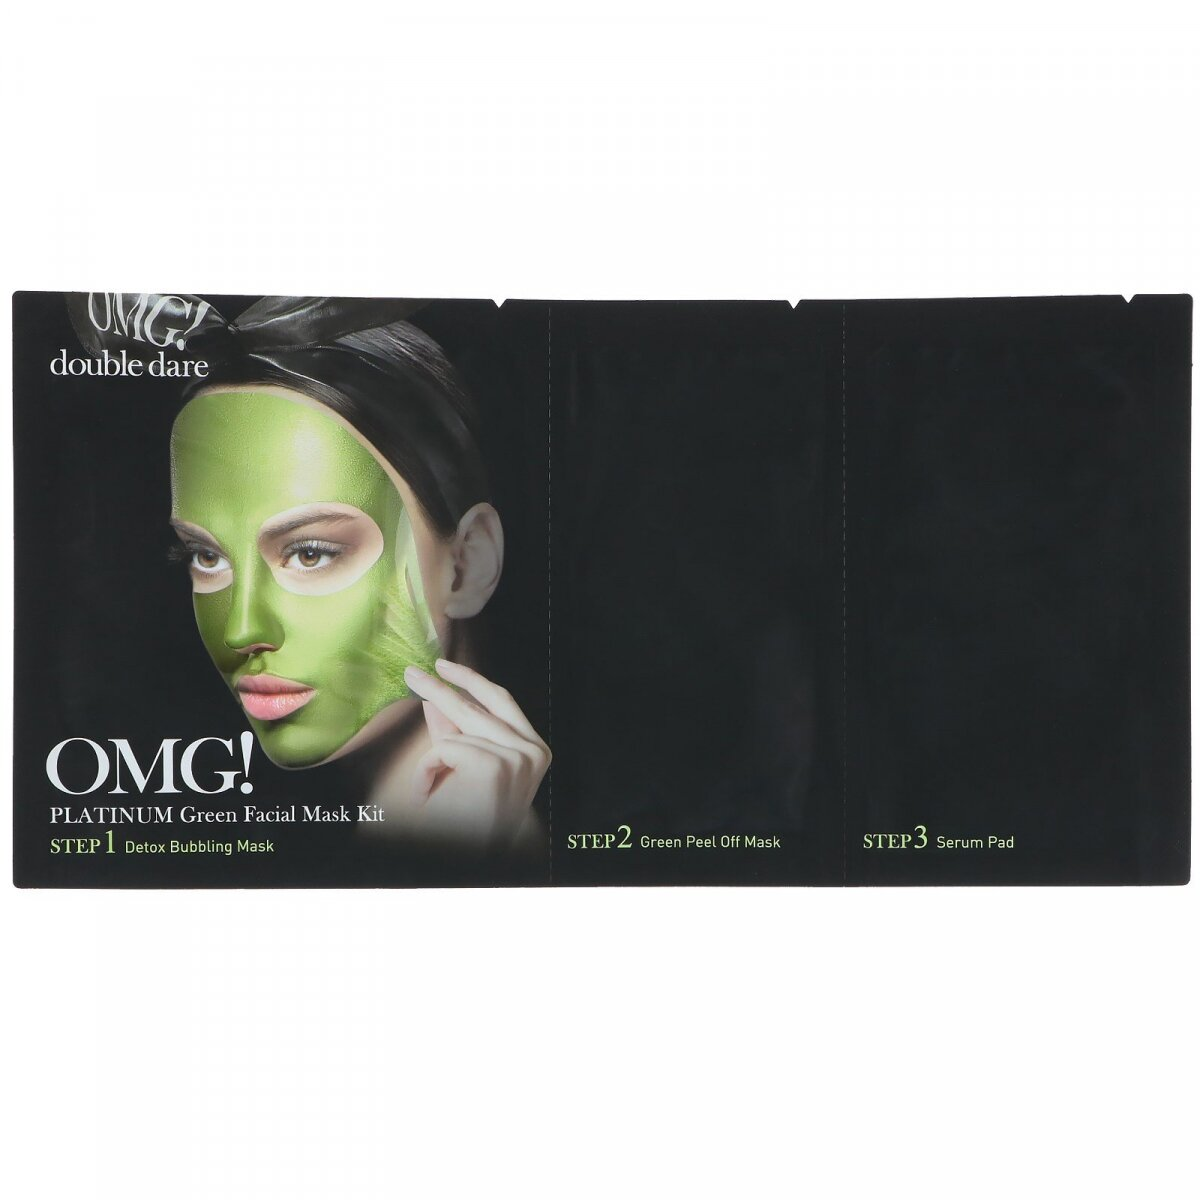 OMG !, Платиново-зеленая маска для лица, OMG!, Platinum Green Facial Mask Kit, Double Dare, 1 набор